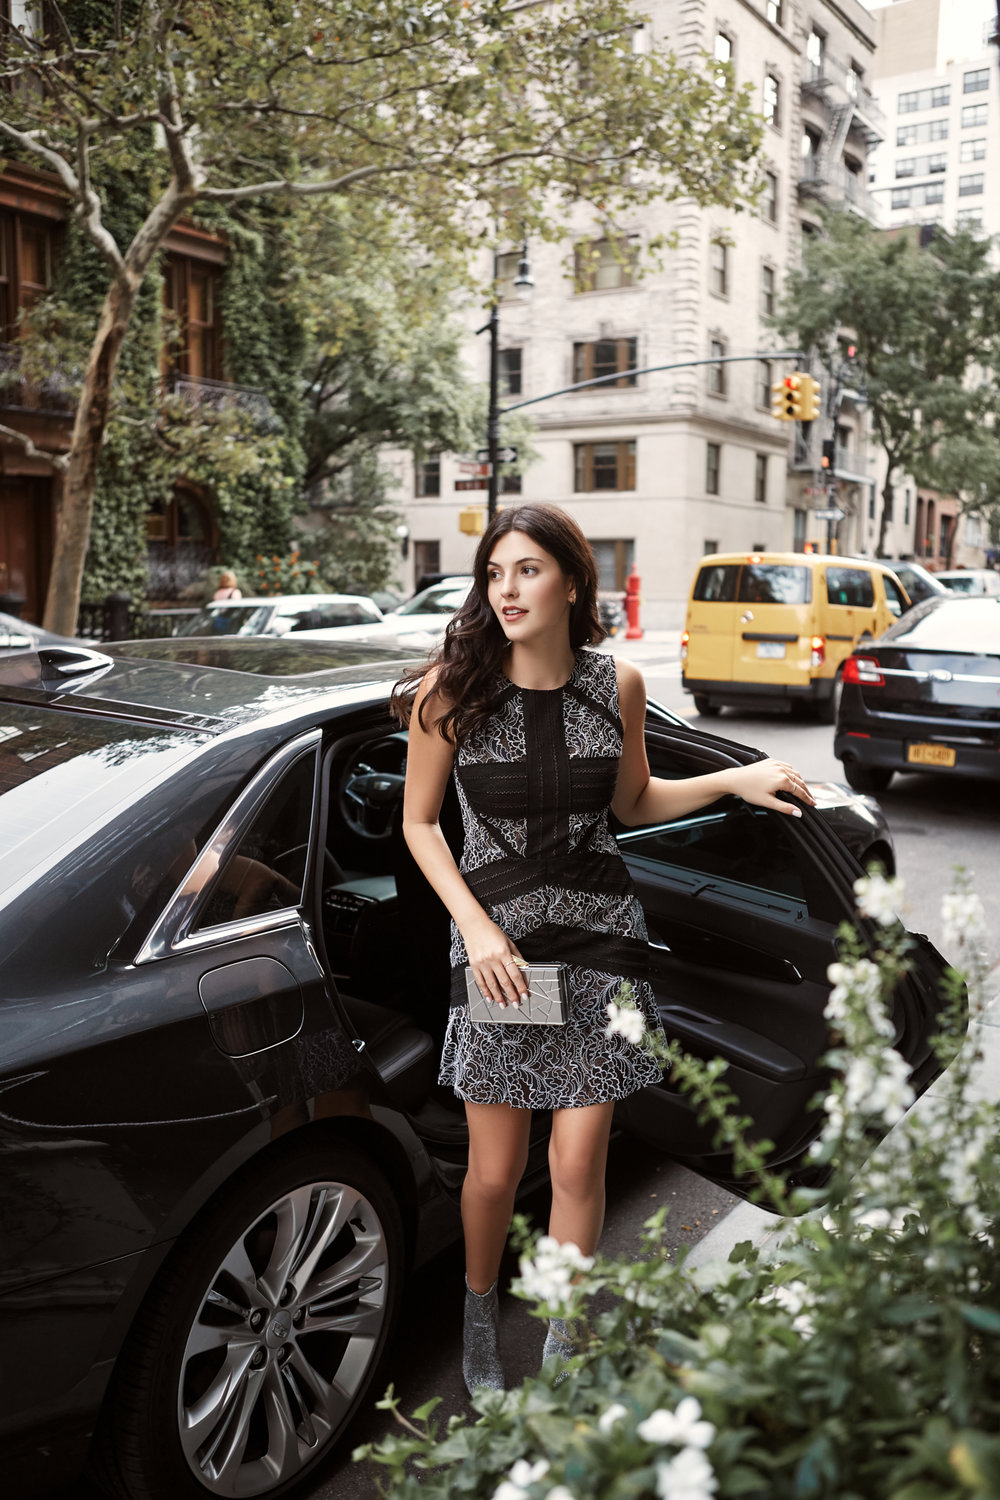 NYFW Recap #2 Julia Friedman wearing a BCBG black and white lace dress.